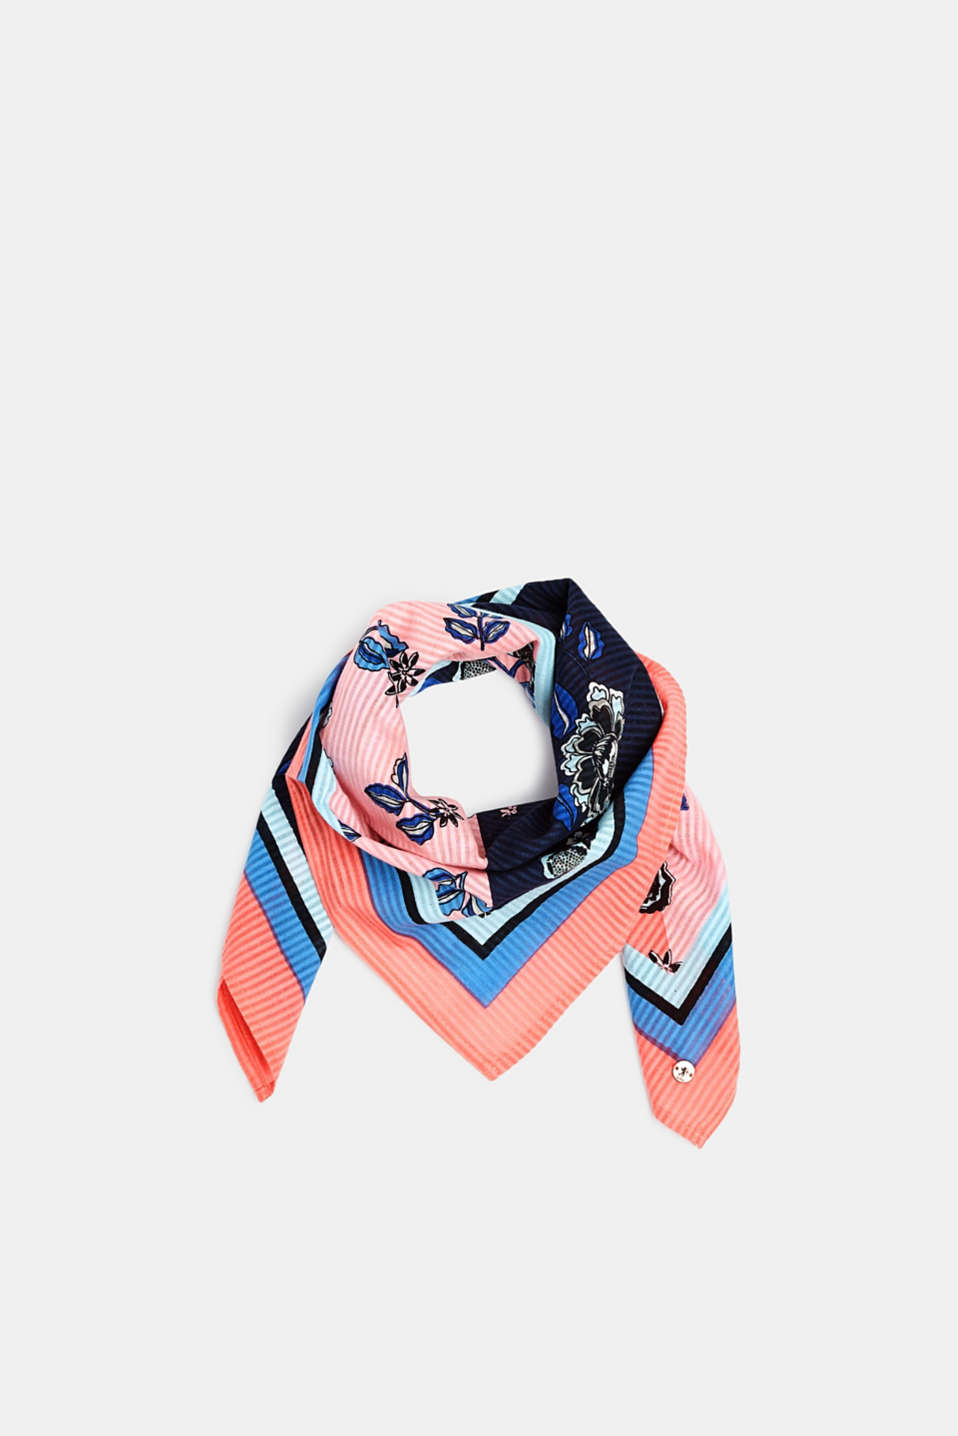 edc - Printed scarf with textured stripes, 100% cotton